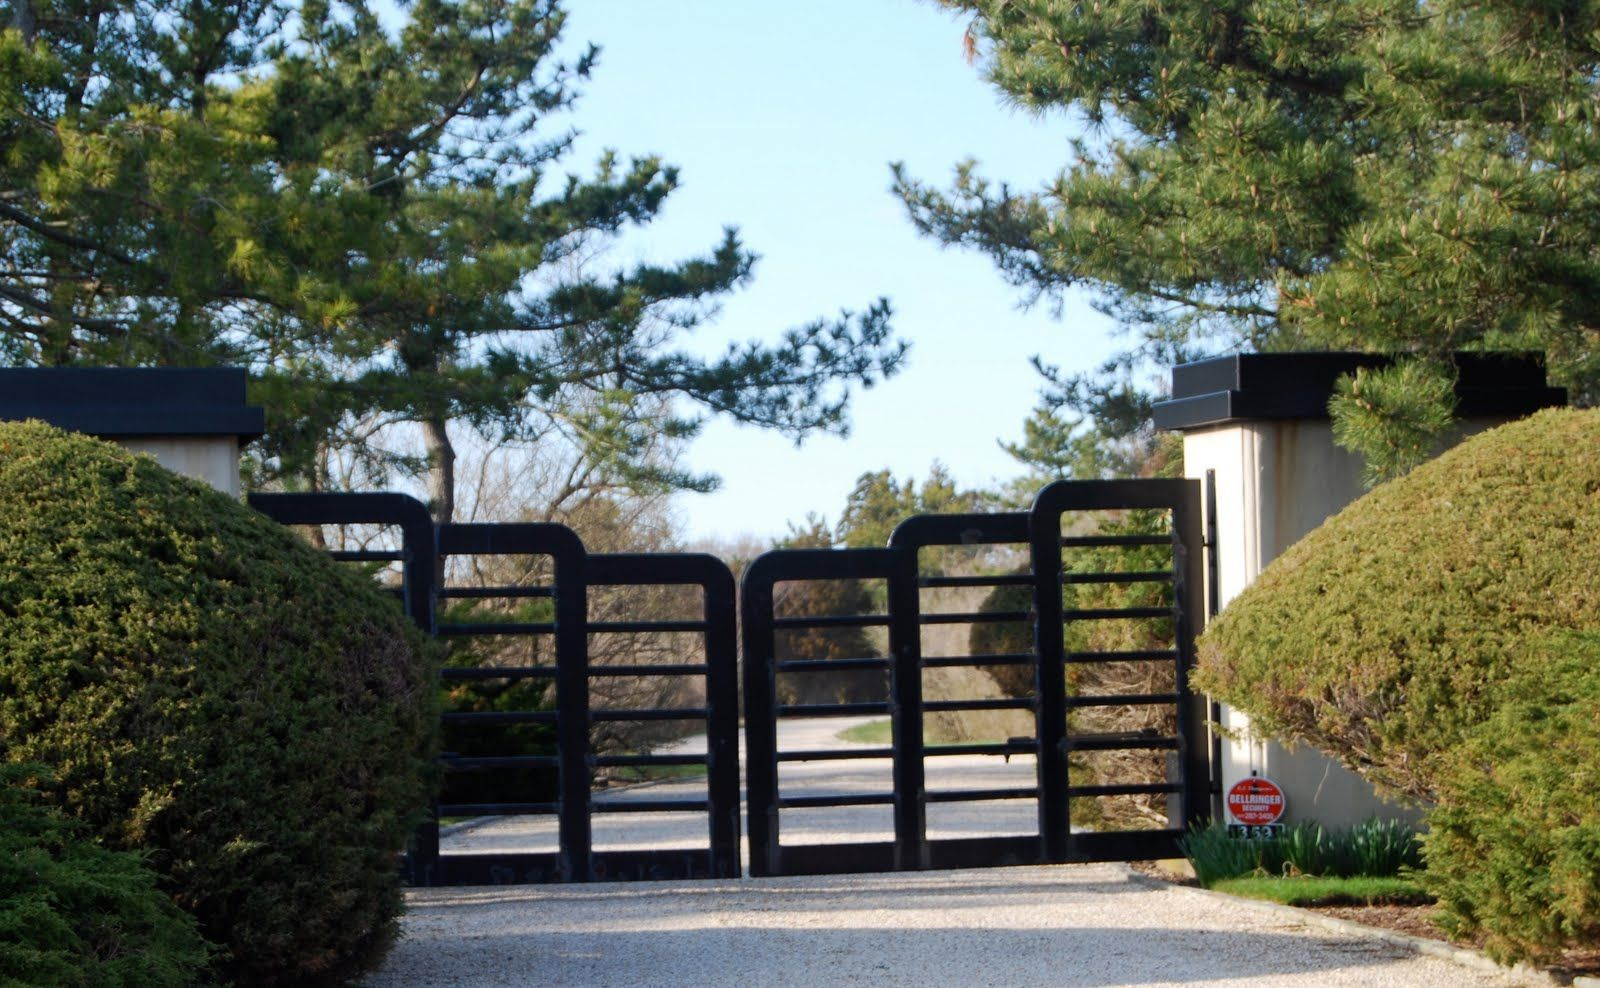 Compund walls and gate pinterest google gate design and gates - Boundary Wall Design Gate Gate Samples Pinterest Home Design Outdoor Gates With Glass Google Search Download